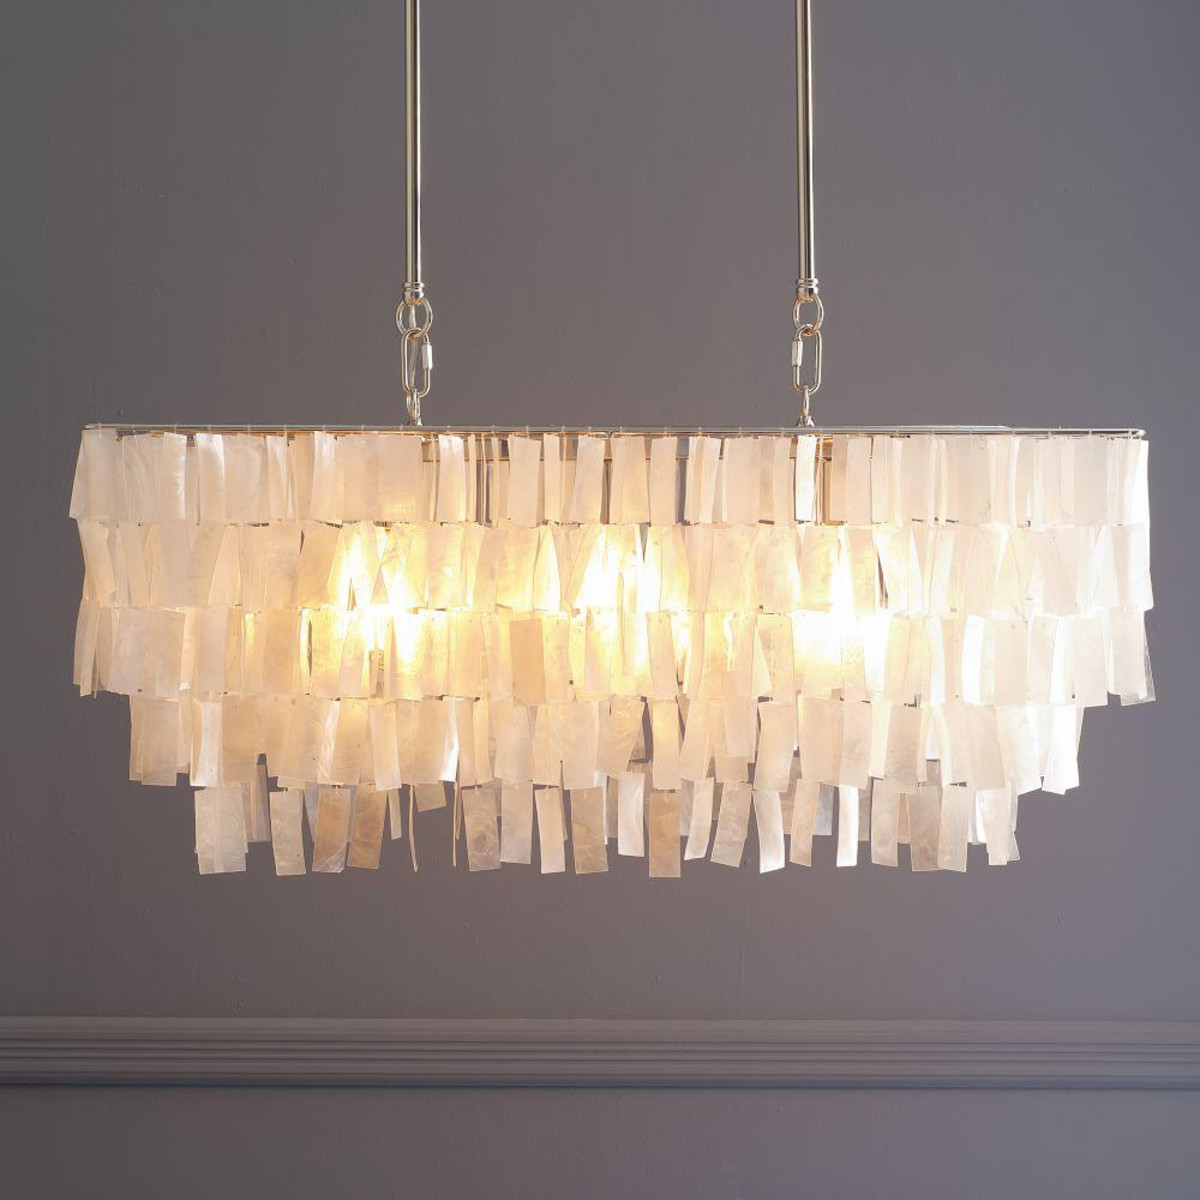 Modern Interior Lighting Design with West Elm Chandelier: Pottery Barn Ceiling Lights | West Elm Chandelier | Pottery Barn Ceiling Light Fixtures